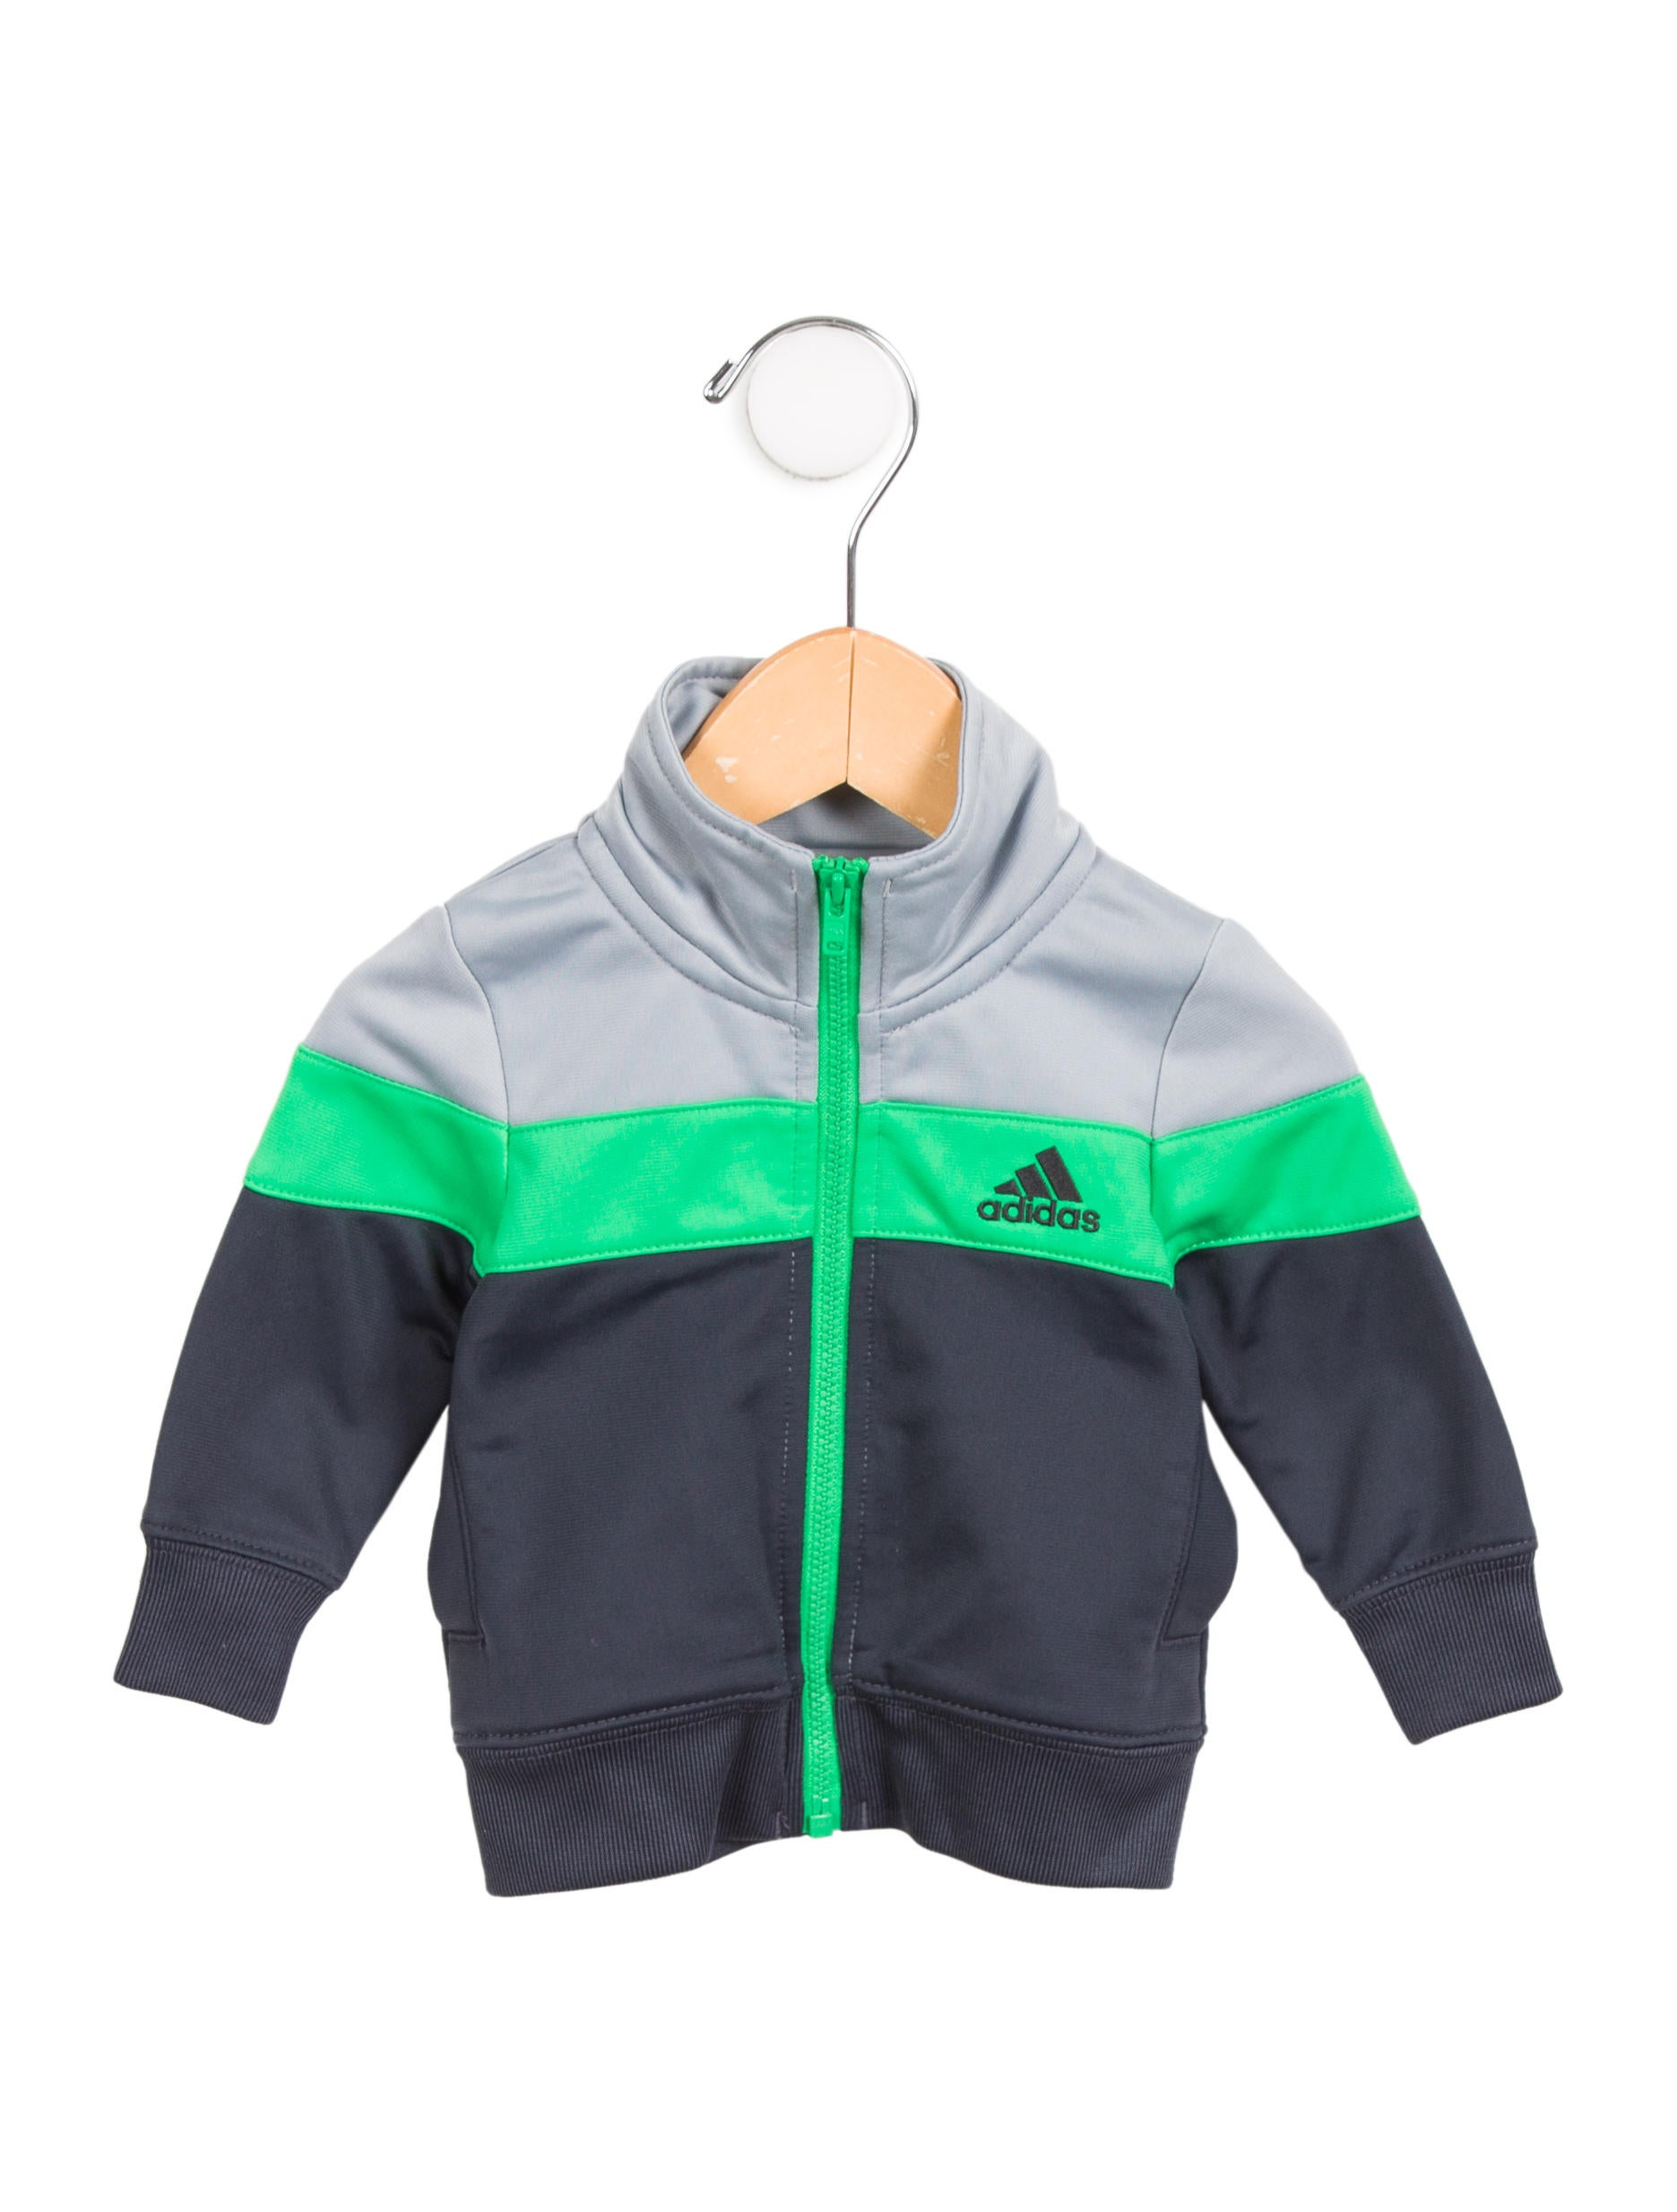 Find great deals on eBay for boys athletic jackets. Shop with confidence.